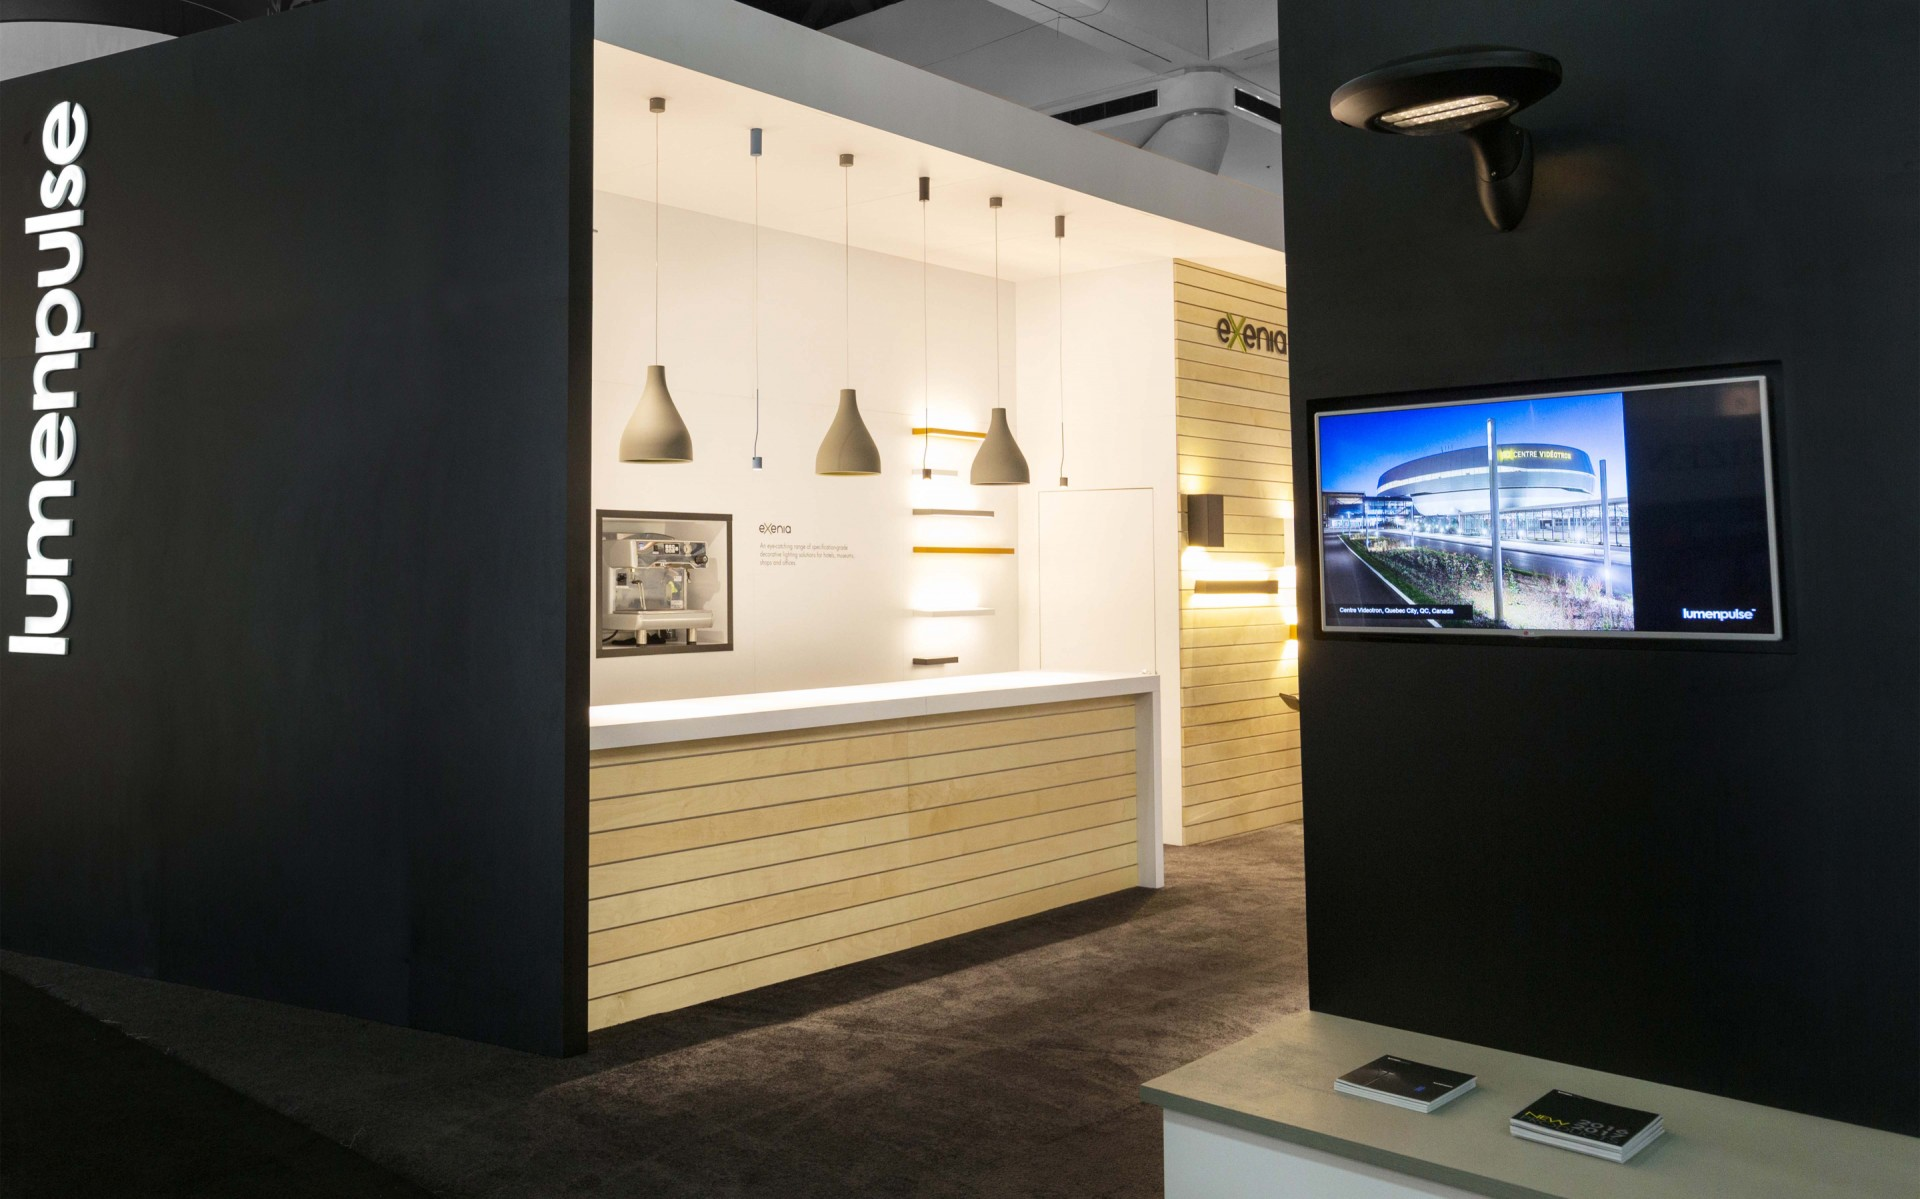 Exenia offers a range of decorative lighting solutions for hotels, shops, and museums, including suspended and wall-mounted luminaires, downlights, spotlights, and more.